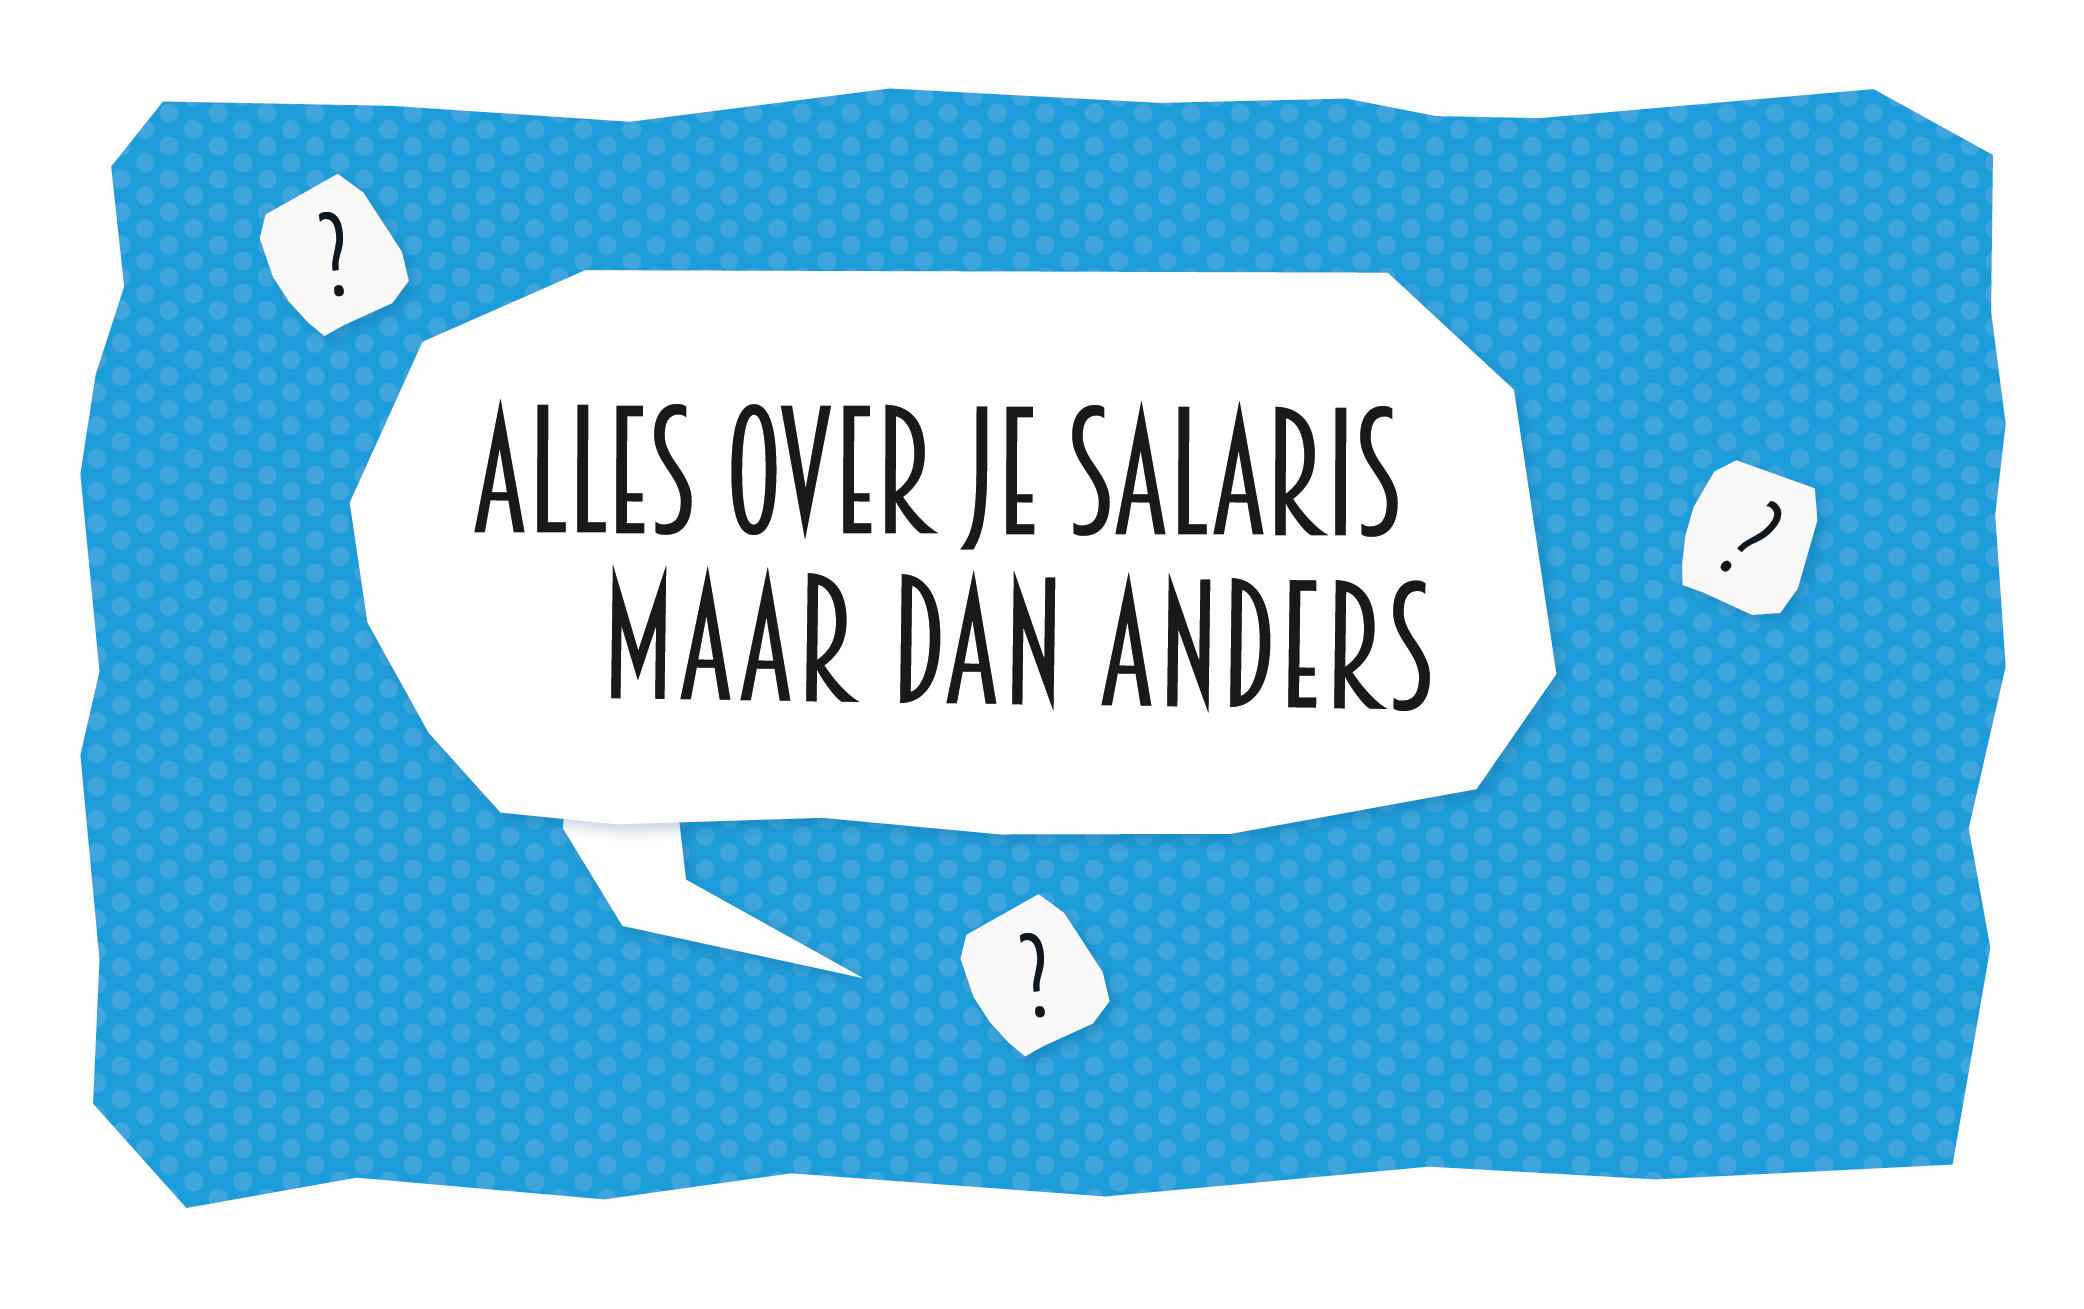 blog-alles-over-je-salaris-maar-dan-anders